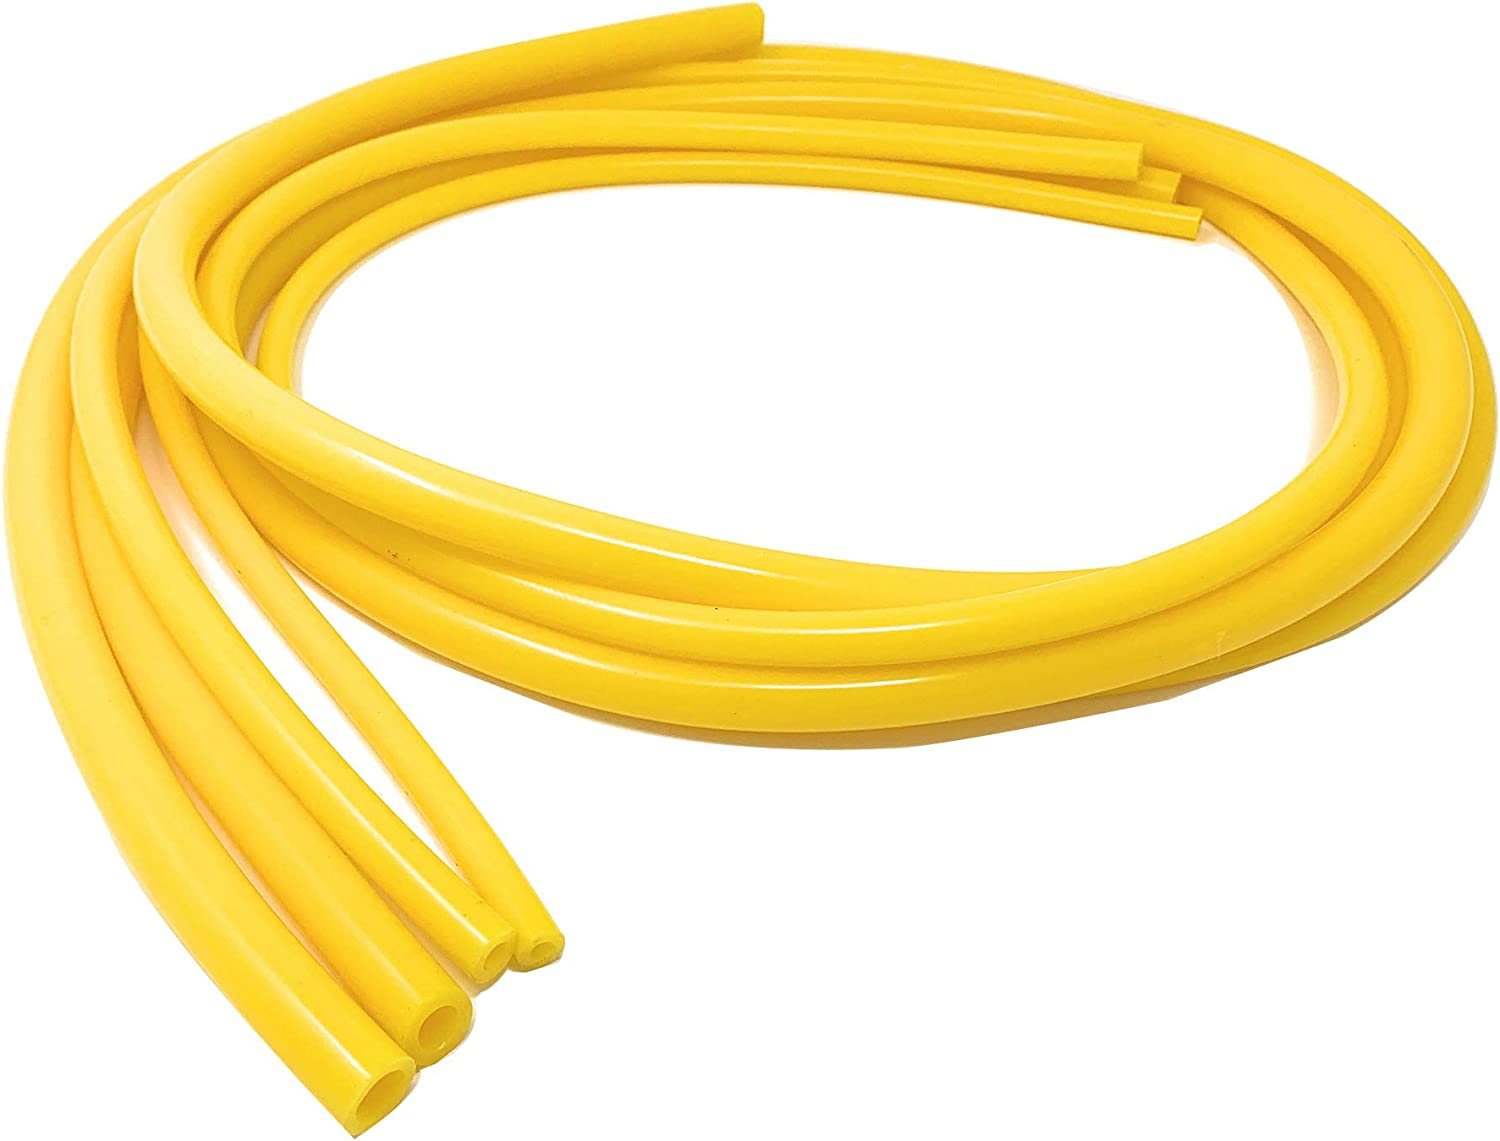 Universal 4mm/6mm/8mm/10mm Inner Diameter High Performance Automotive Silicone Vacuum Tubing Hose line Kit (Yellow)